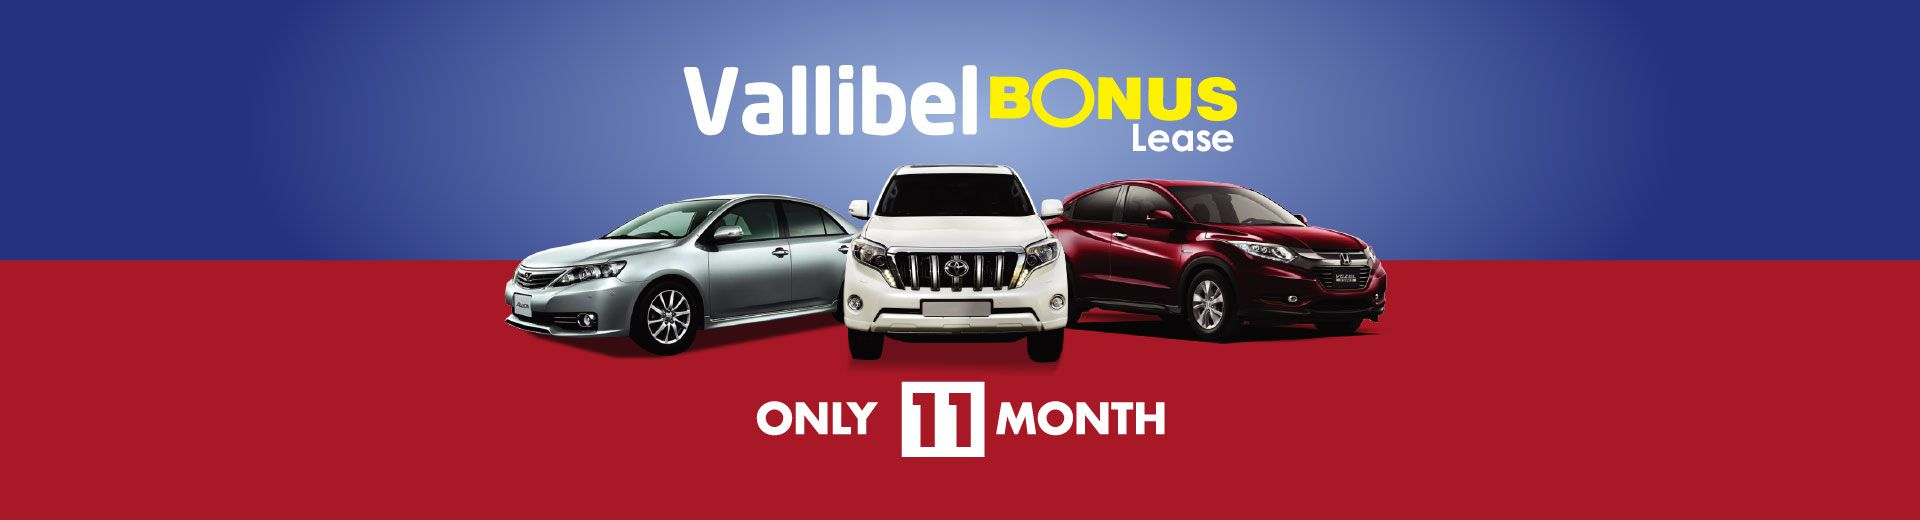 Vallibel Bonus Lease